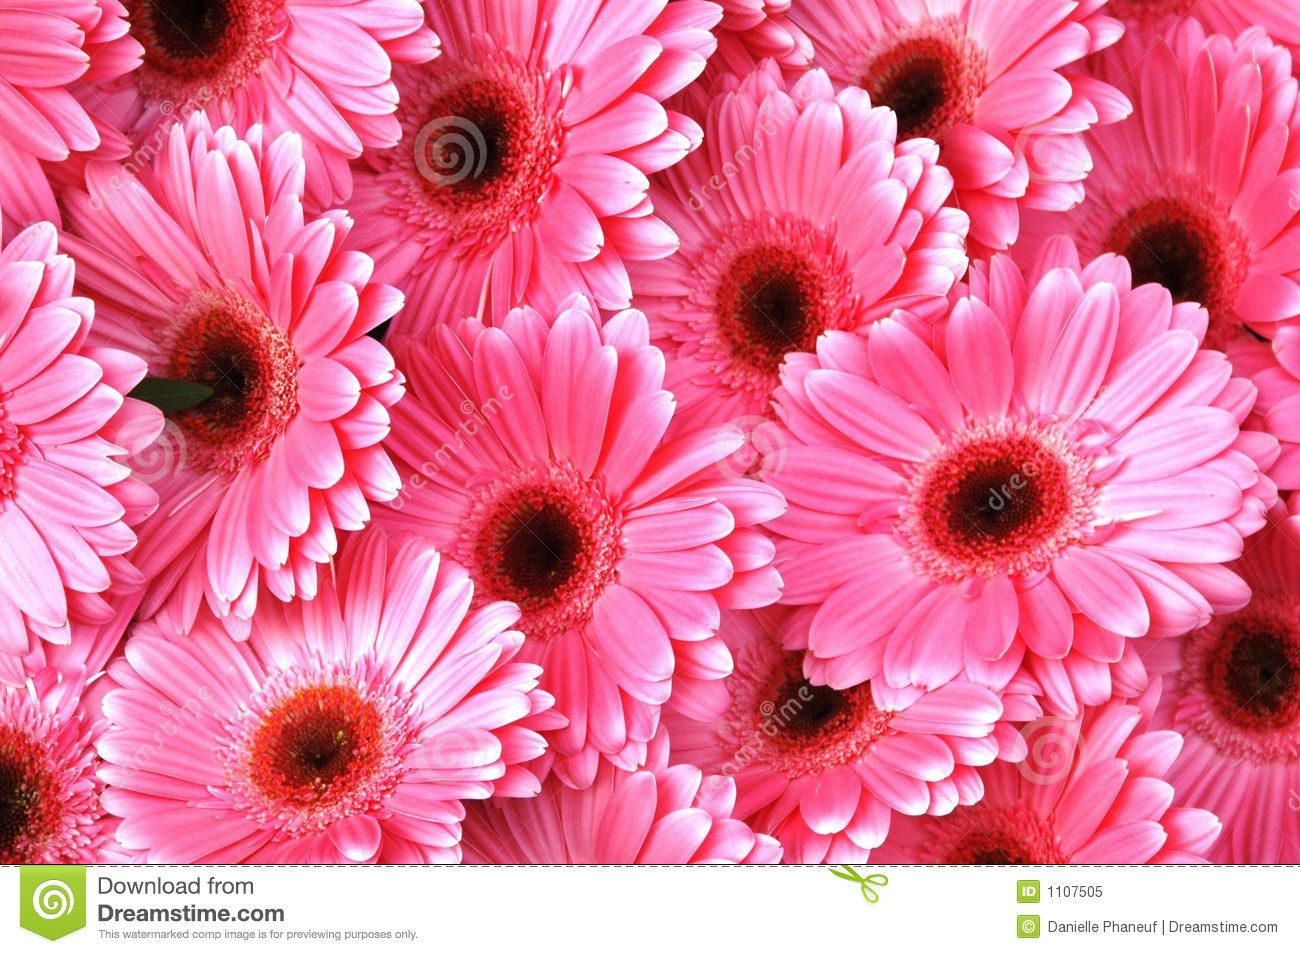 bright pink gerbera daisies stock image image 1107505. Black Bedroom Furniture Sets. Home Design Ideas